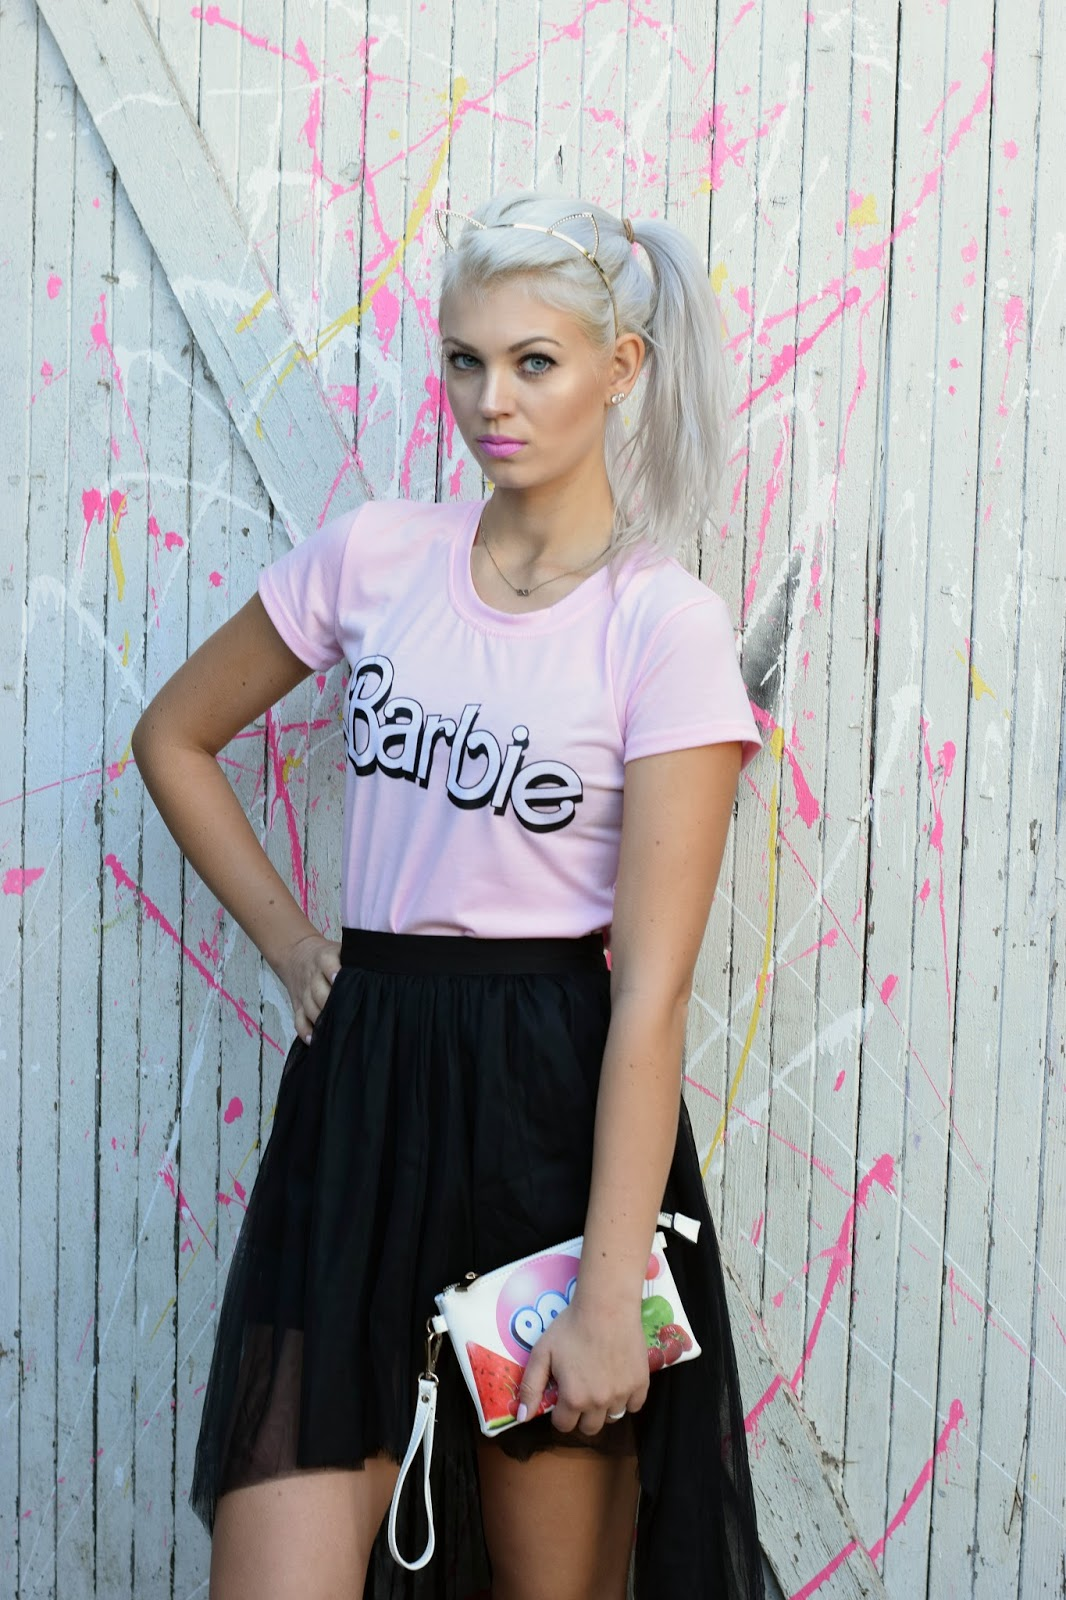 Irisie, tulle skirt, barbie shirt, barbie, german blondy